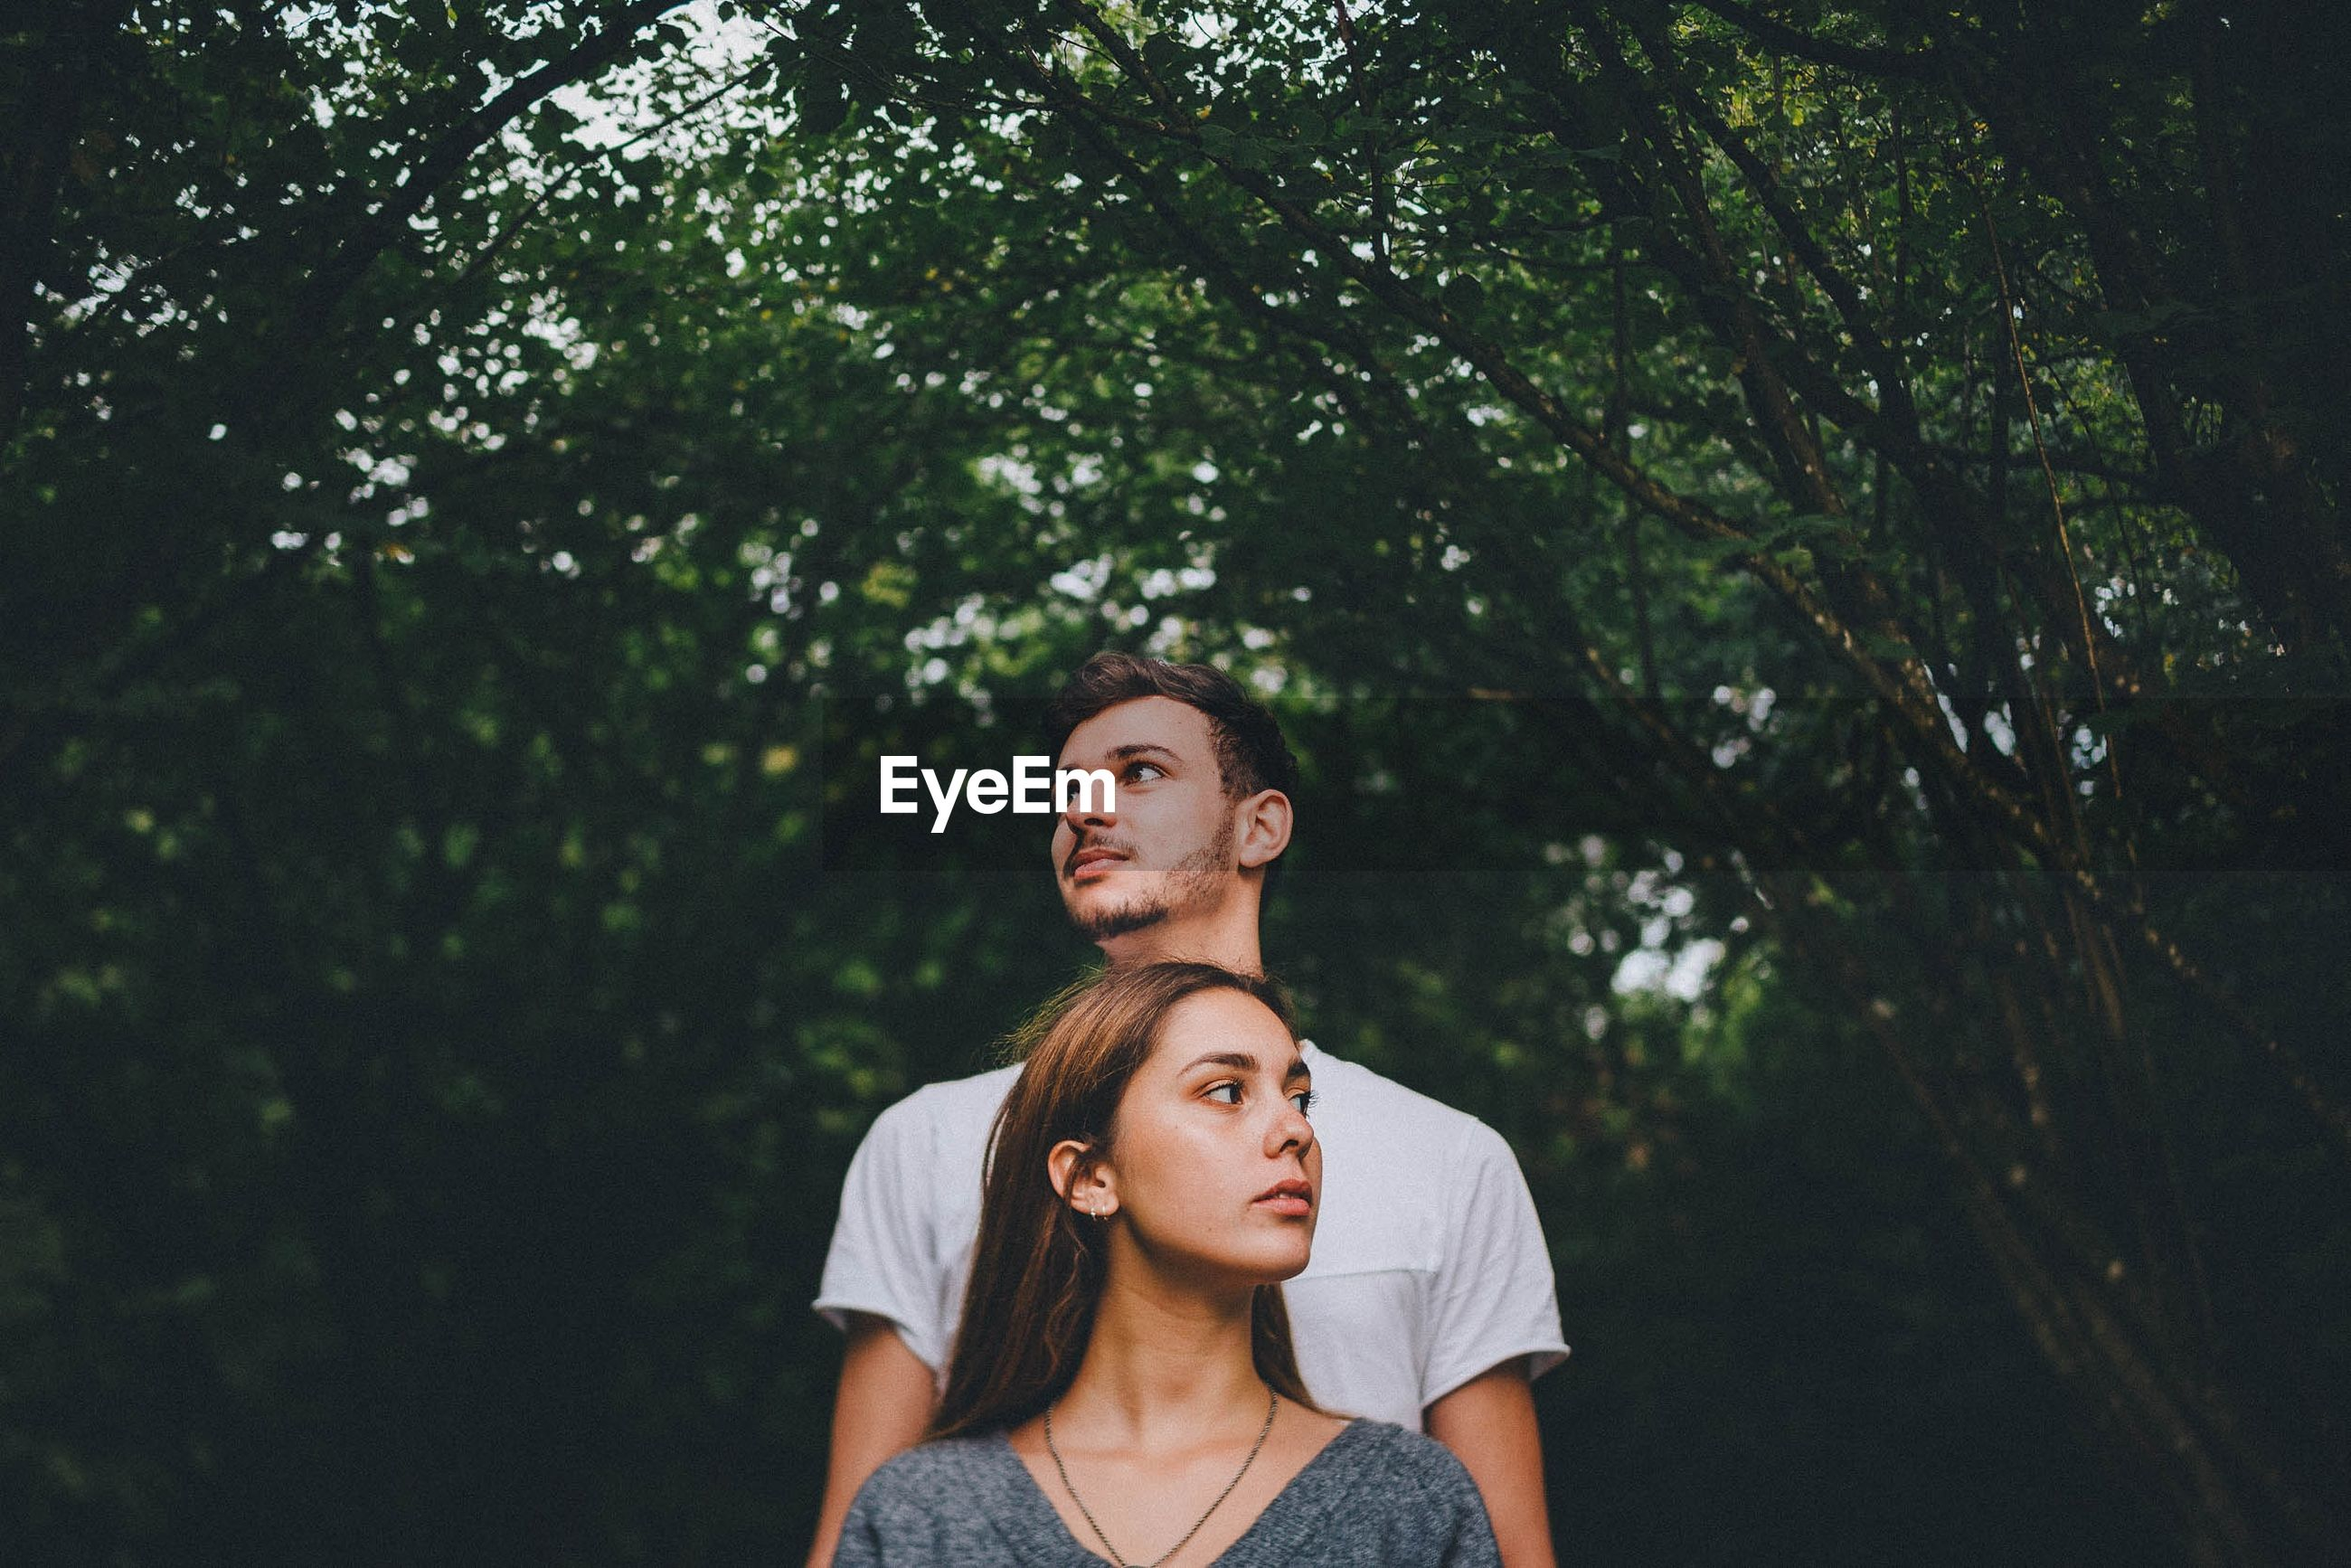 two people, real people, tree, young adult, portrait, plant, togetherness, front view, lifestyles, couple - relationship, day, casual clothing, people, headshot, leisure activity, looking, focus on foreground, young women, nature, young men, contemplation